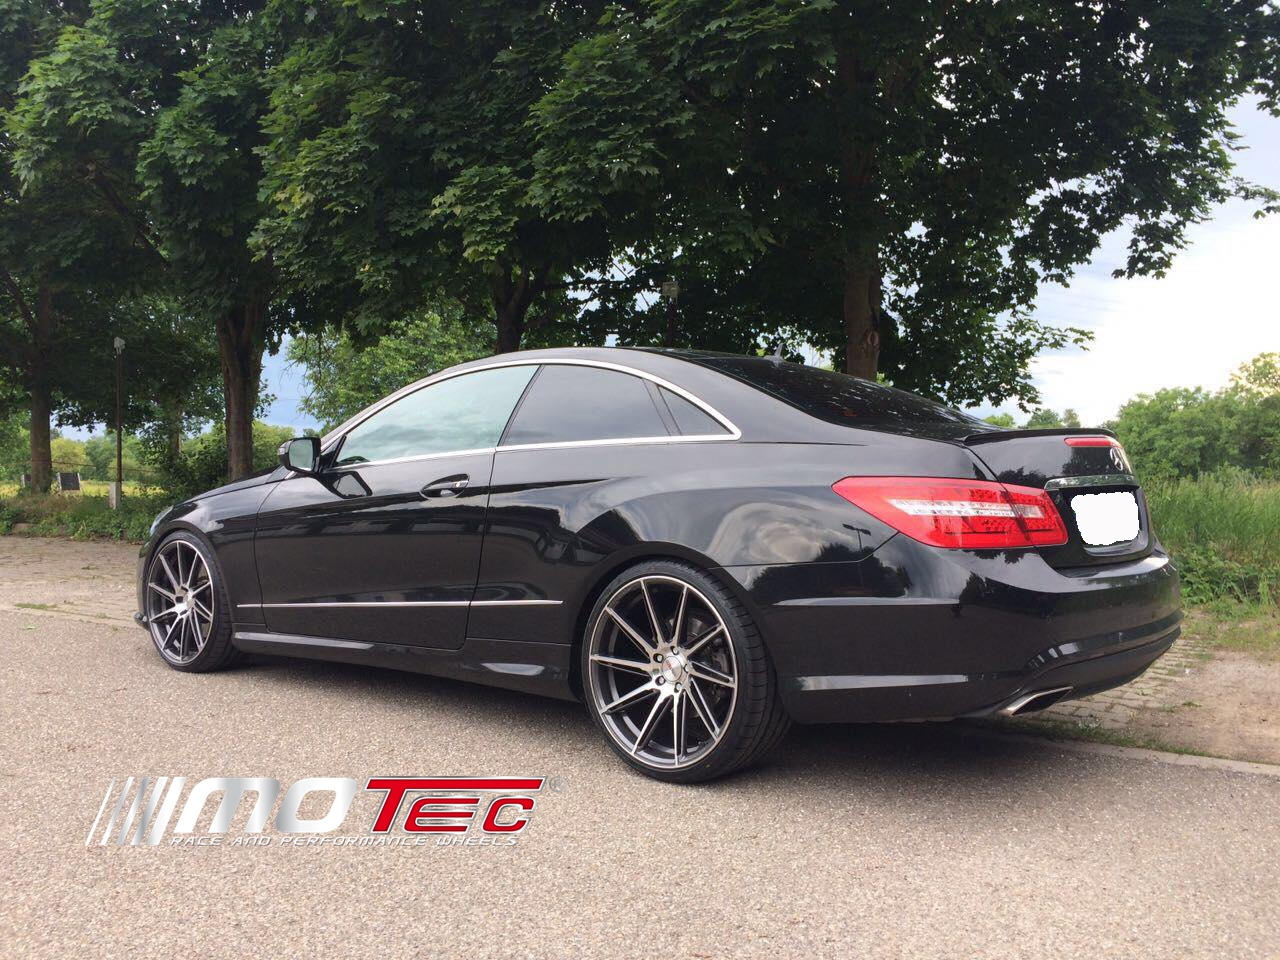 19 inch summer tire for mercedes benz c e cls class w204 for Mercedes benz c class rims